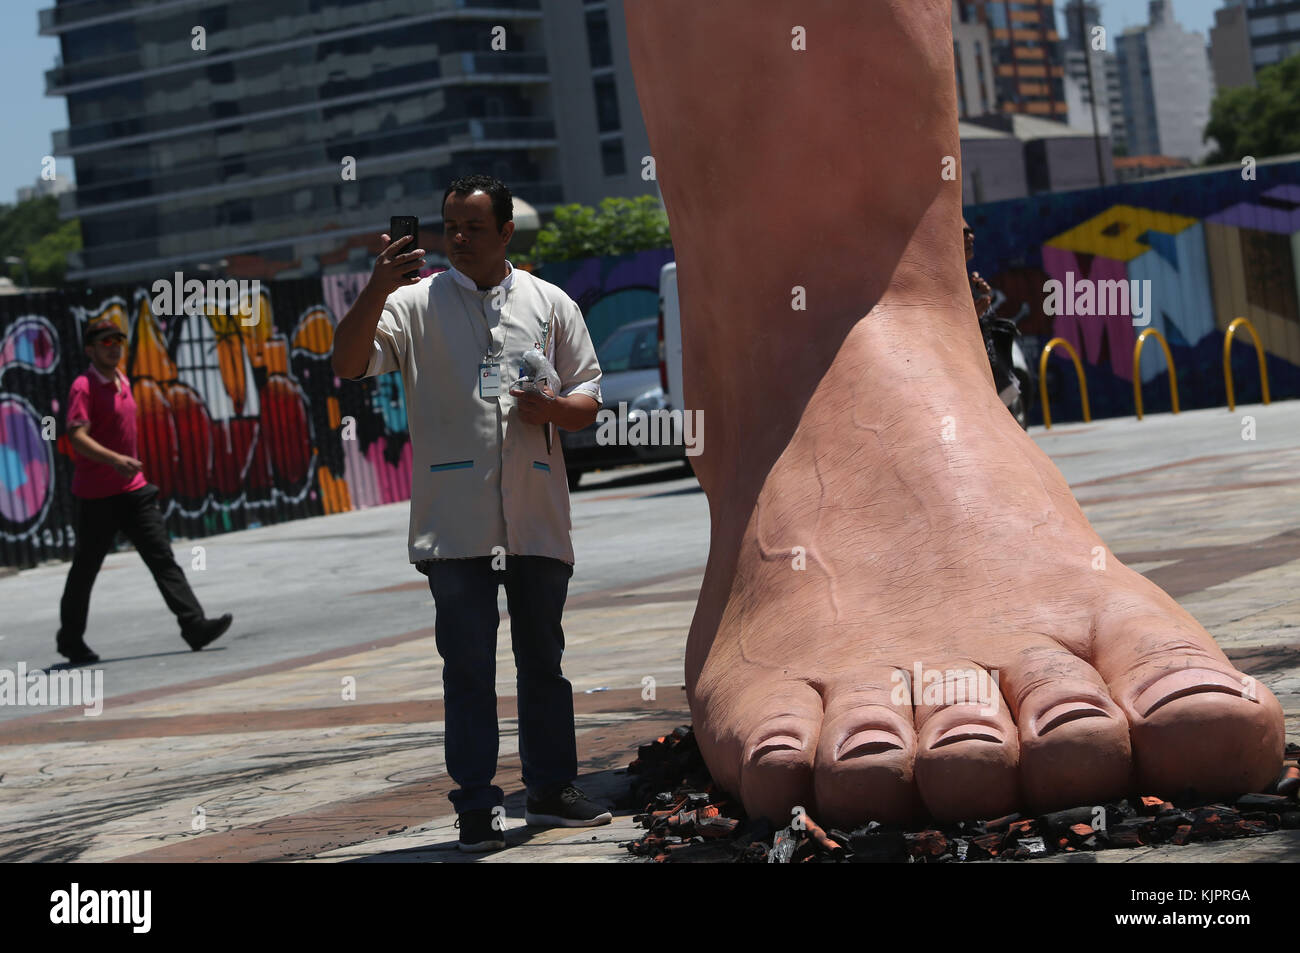 Sao Paulo, Brazil. 29th Nov, 2017. A man stands by a sculpture of a giant foot stepping on hot coals, of Brazilian - Stock Image